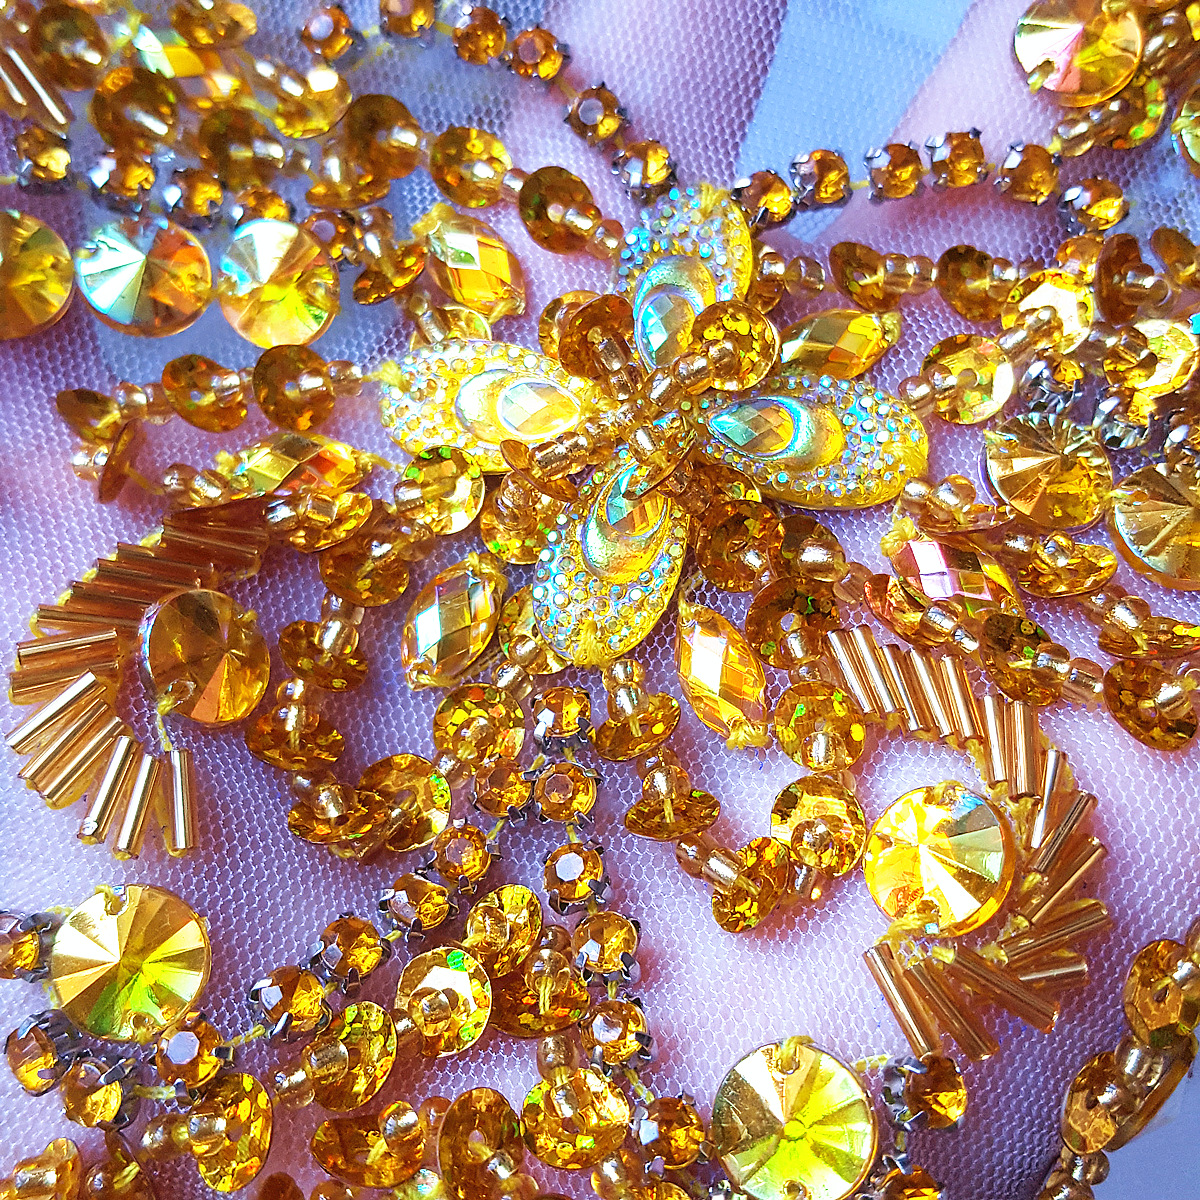 CRazy 29x39cm Yellow Sew on Rhinestones Sequins wedding Decoration bridal  dress Appliques and Patches for Costumes Beaded Diy-in Patches from Home    Garden ... cbb0a9cc8f7d